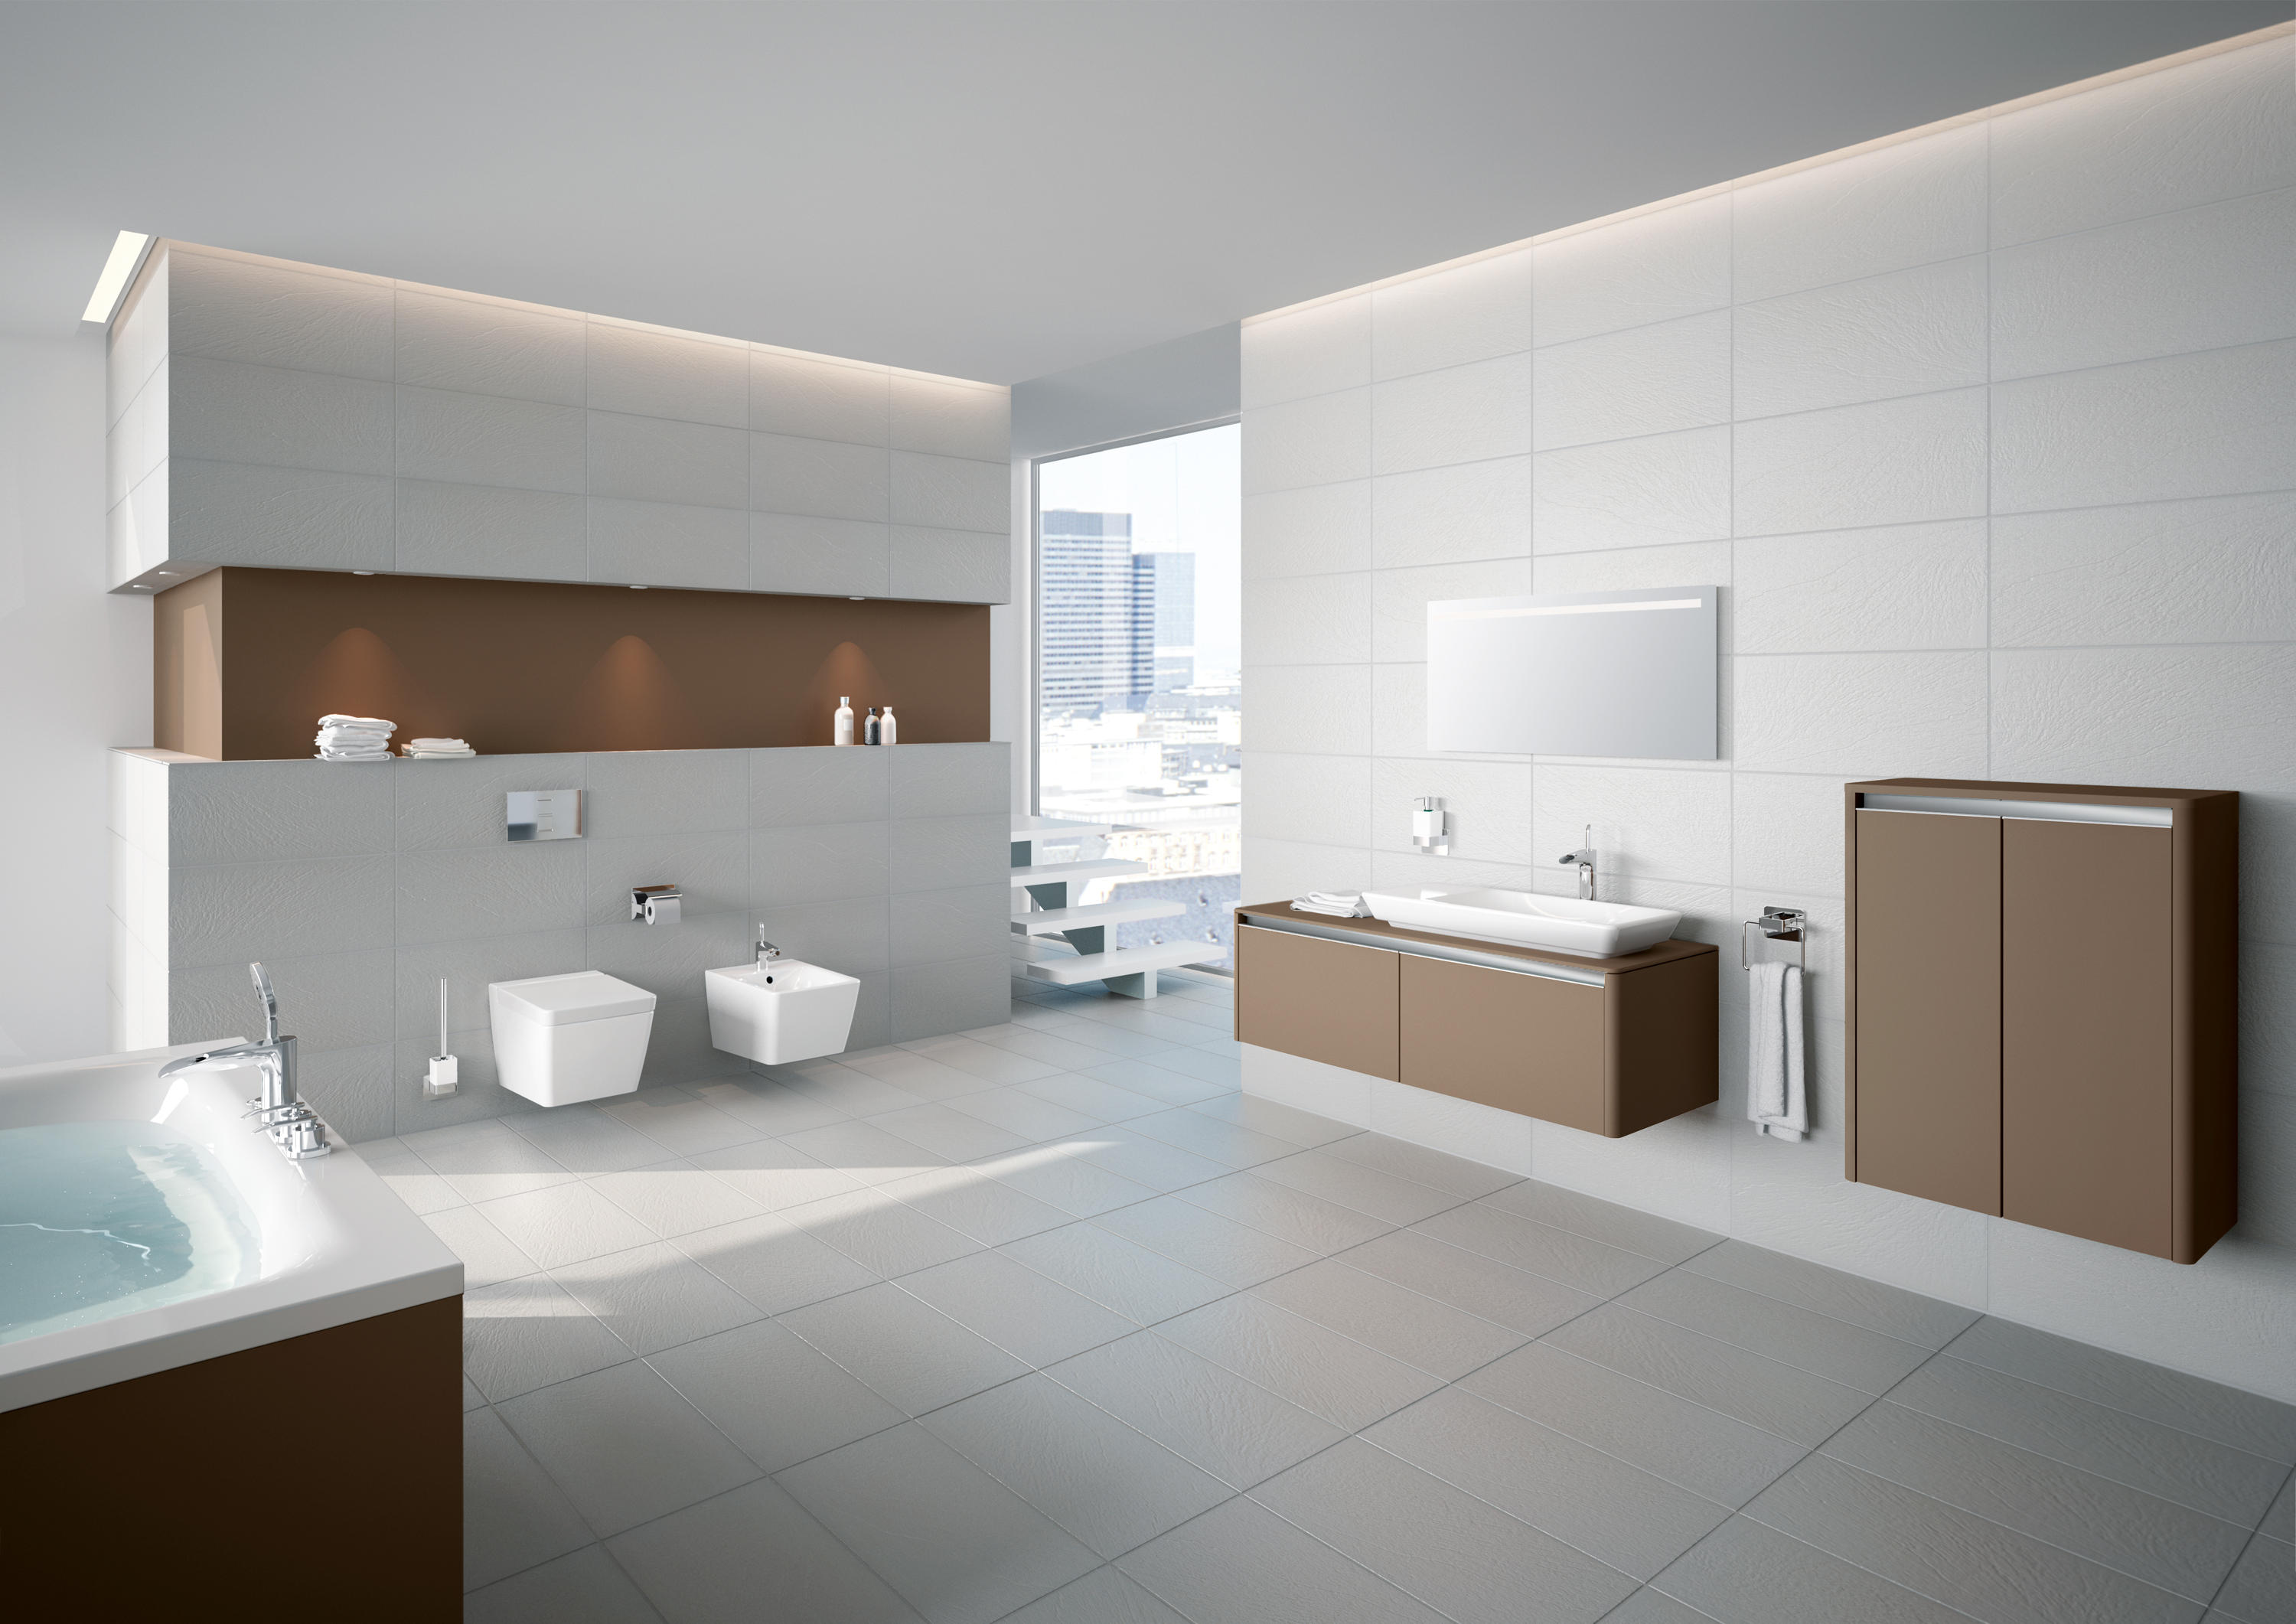 T4 WALL HUNG WC - Toilets from VitrA Bad | Architonic